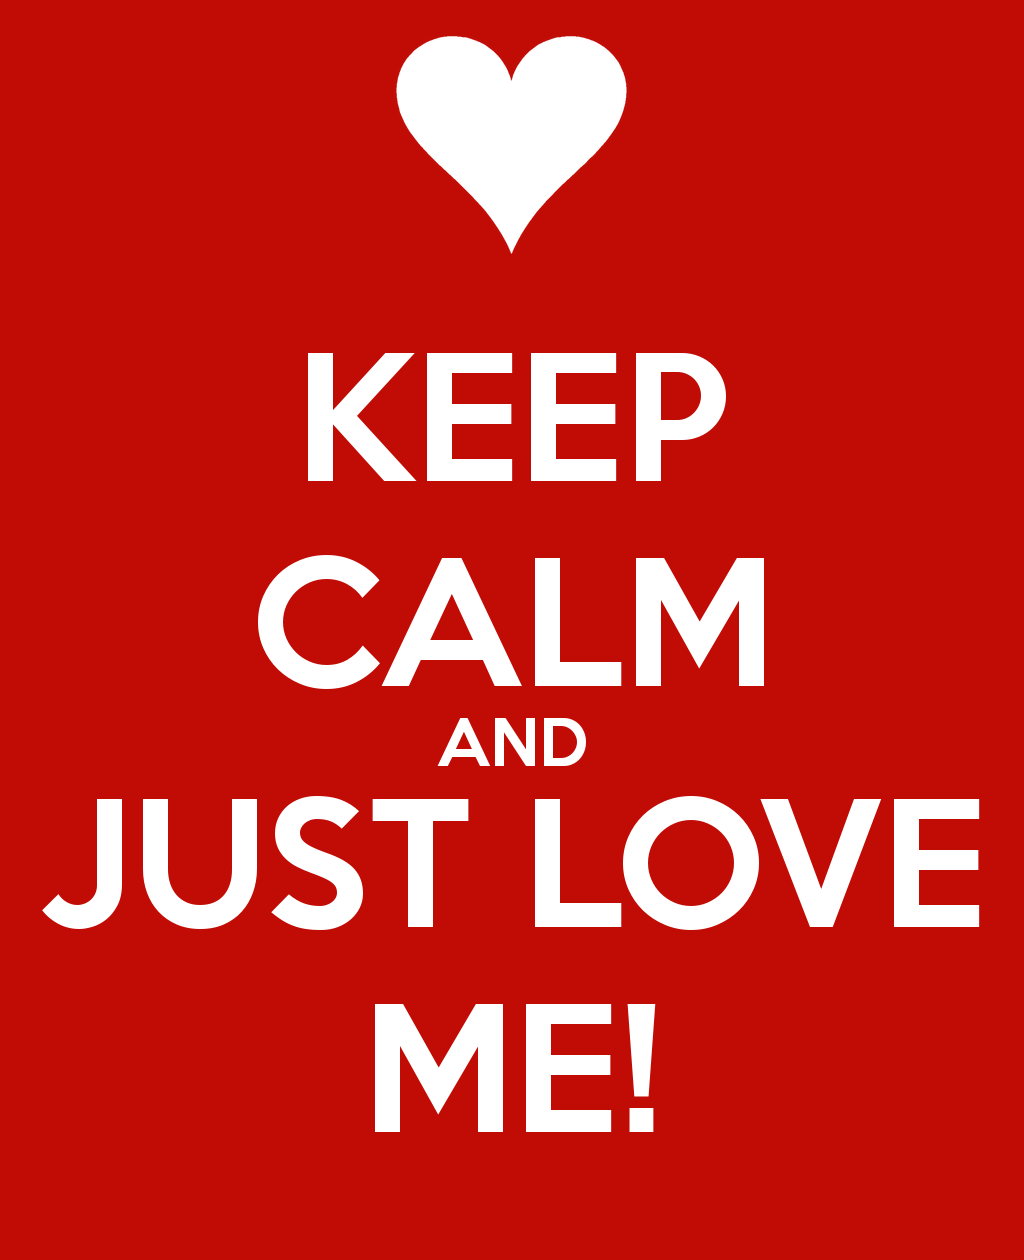 Just Love Me